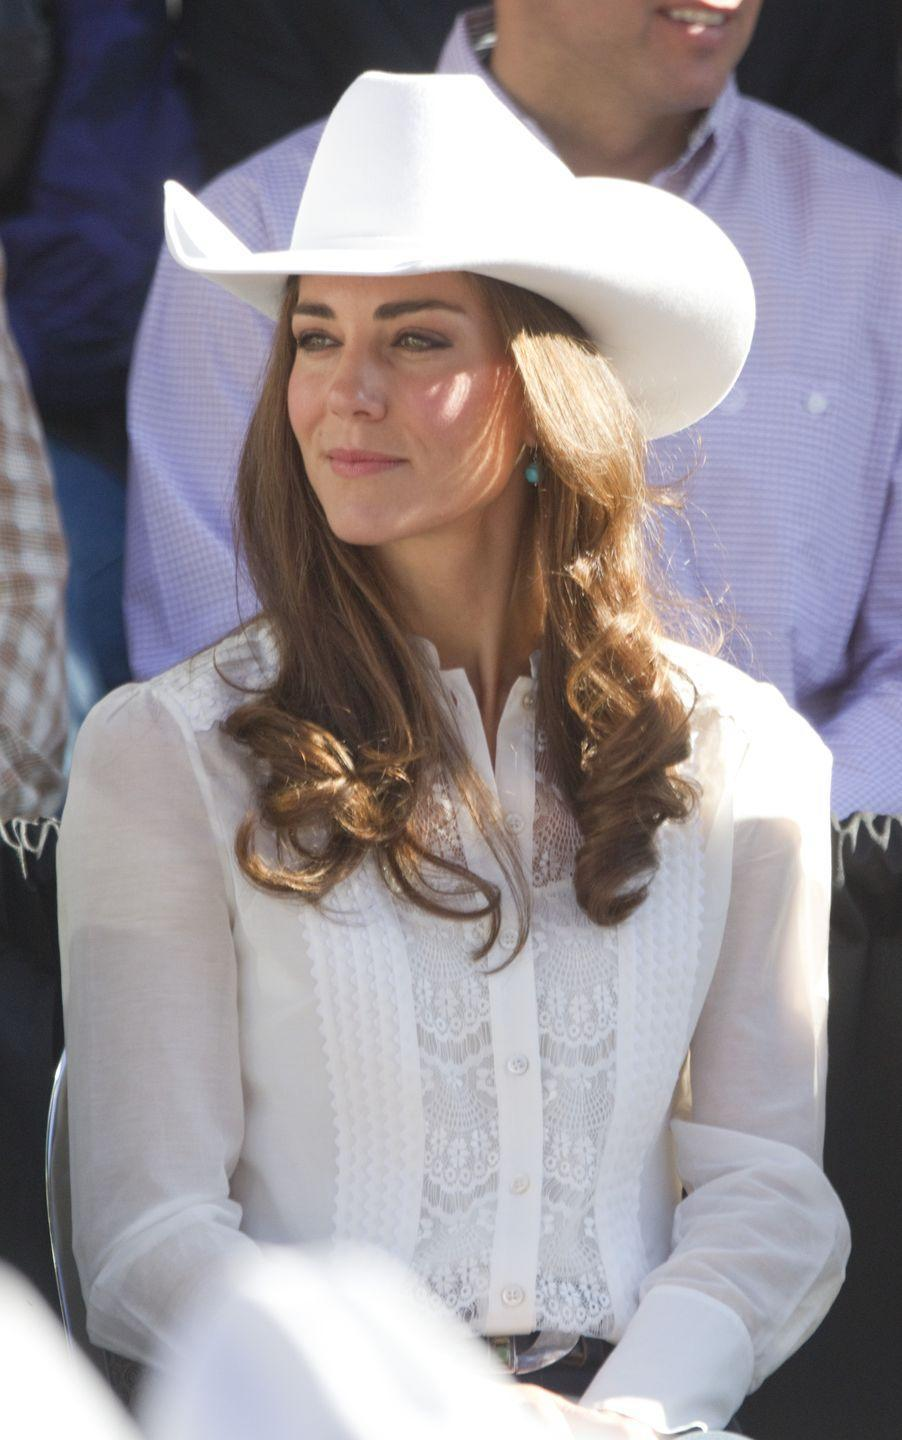 """<p>Shortly after her <a href=""""https://www.townandcountrymag.com/the-scene/weddings/g20052313/kate-middleton-prince-william-royal-wedding-2011-photos/"""" rel=""""nofollow noopener"""" target=""""_blank"""" data-ylk=""""slk:fairytale wedding"""" class=""""link rapid-noclick-resp"""">fairytale wedding</a> to Prince William in April 2011, the Duchess of Cambridge embarked on a royal tour of North America with her husband. In Calgary, Canada, she was gifted a pair of turquoise earrings by designer Corrie McLeod, which she then wore to complement her Western-themed ensemble for the Calgary Stampede Parade.<br></p>"""